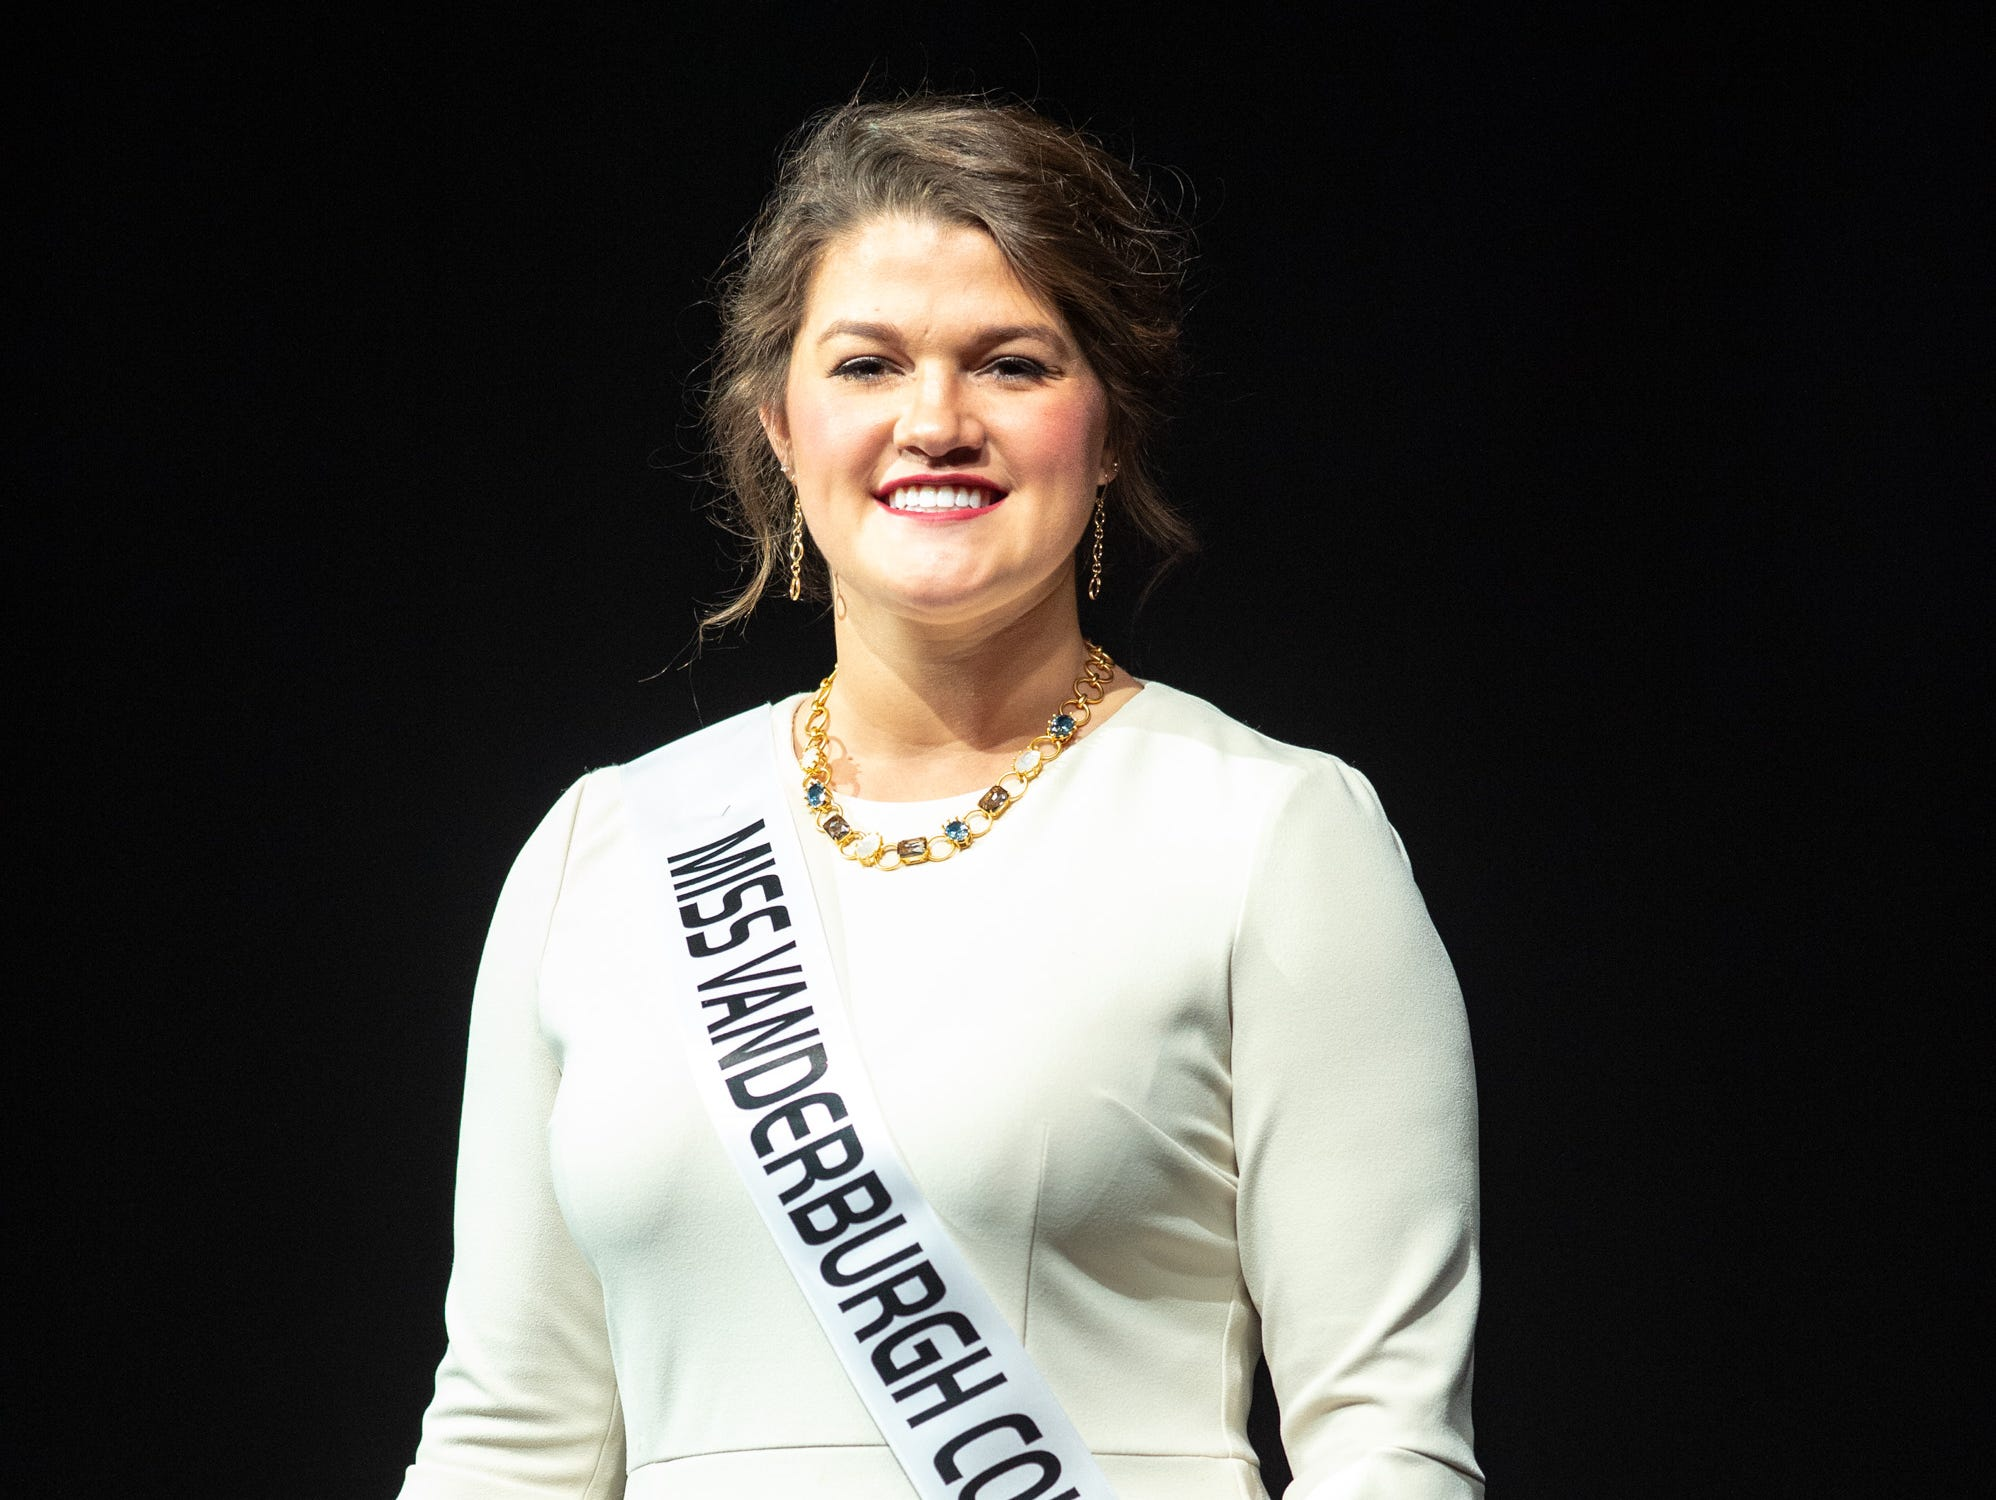 Miss Vanderburgh County, Lauren Ziliak, during the 61st Indiana State Fair Queen Pageant at the Indiana State Fairgrounds in Indianapolis on Sunday, Jan. 6, 2019.